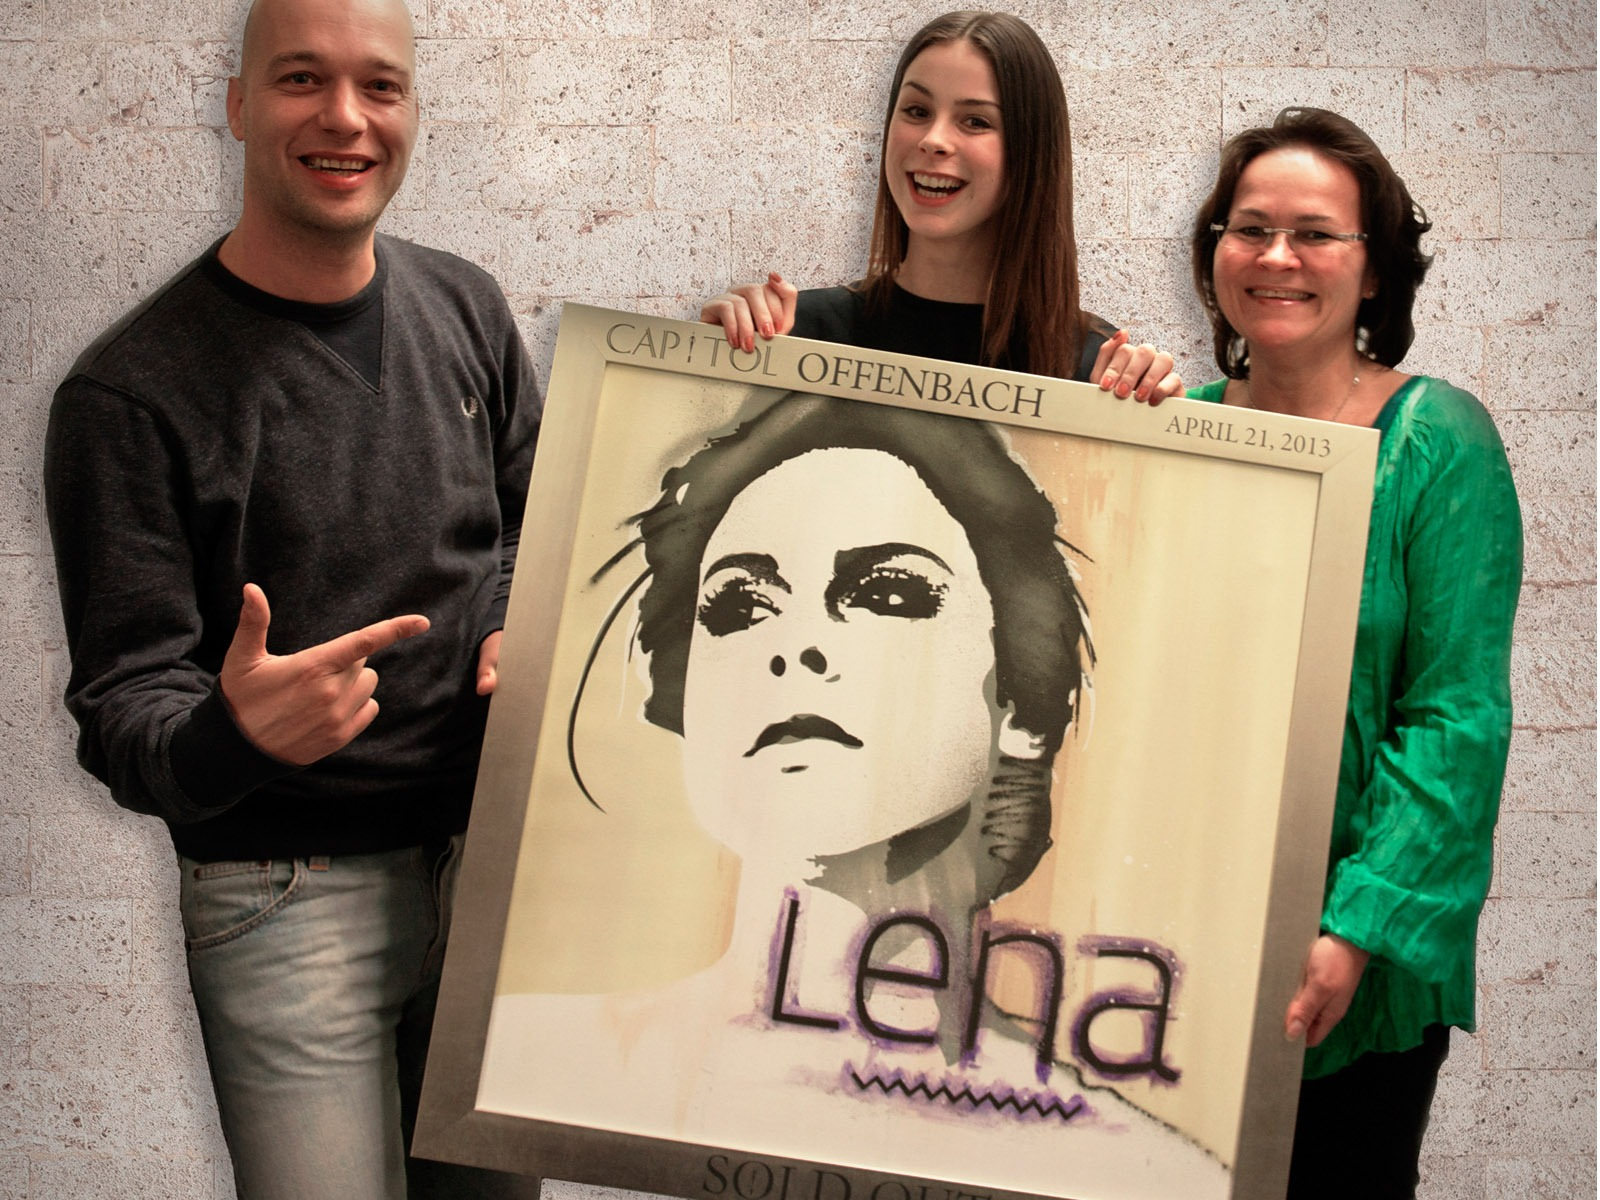 graffitiauftrag_artmos4_sold_out_award_lena_meyer_landrut_Stadthalle_Offenbach_Leinwand_Graffiti